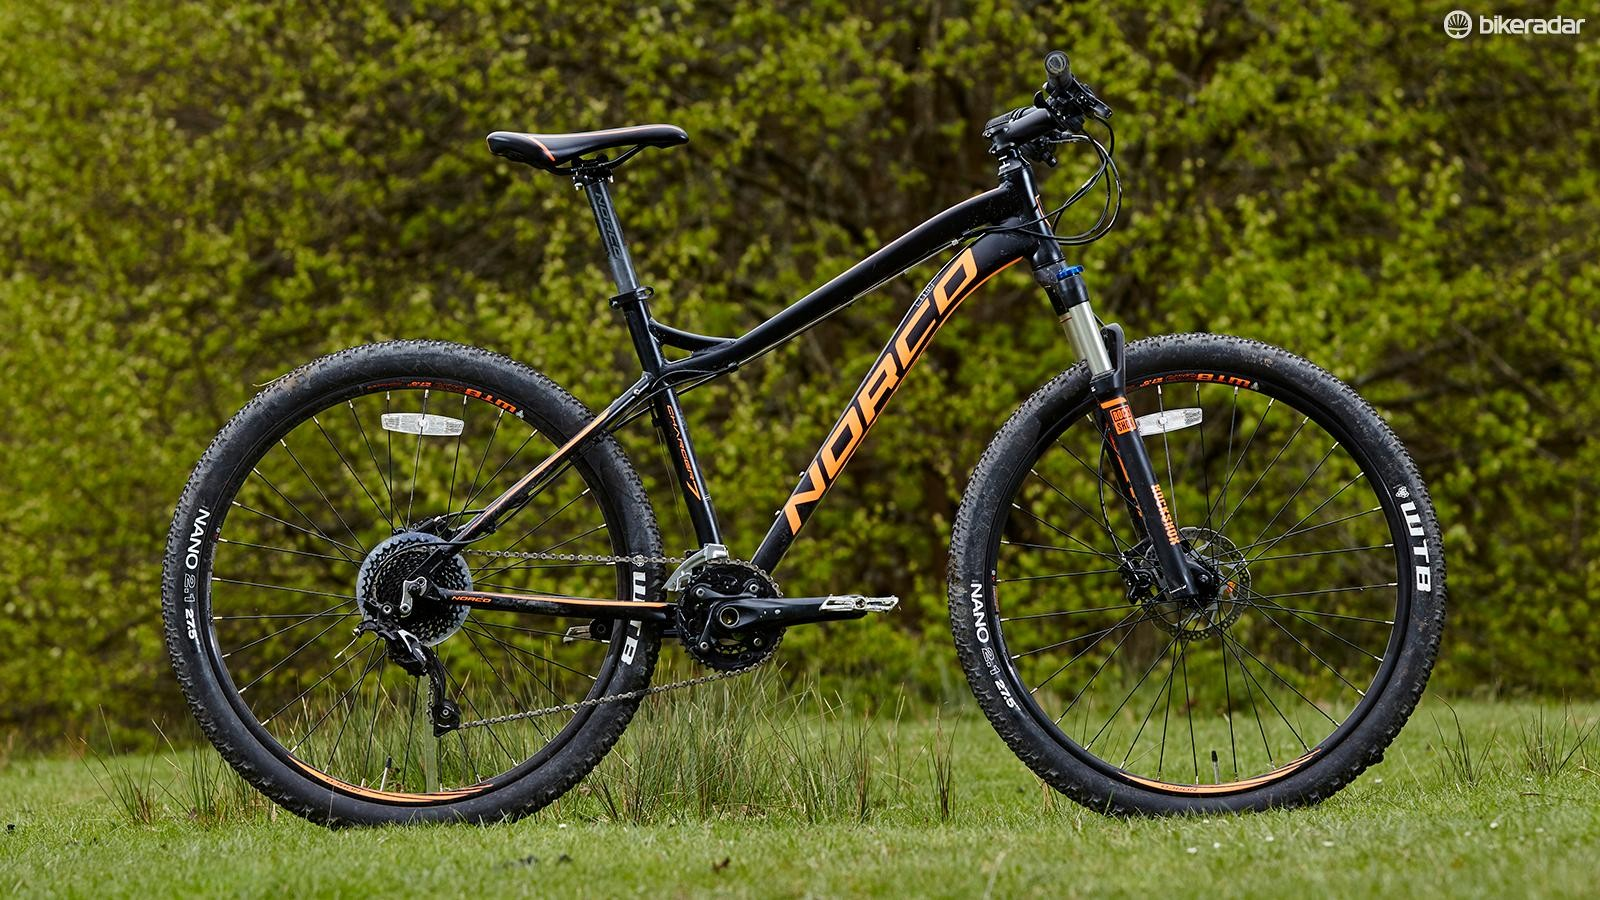 Norco's Charger 7.1 expertly blends decent components and tidy handling for a modest outlay